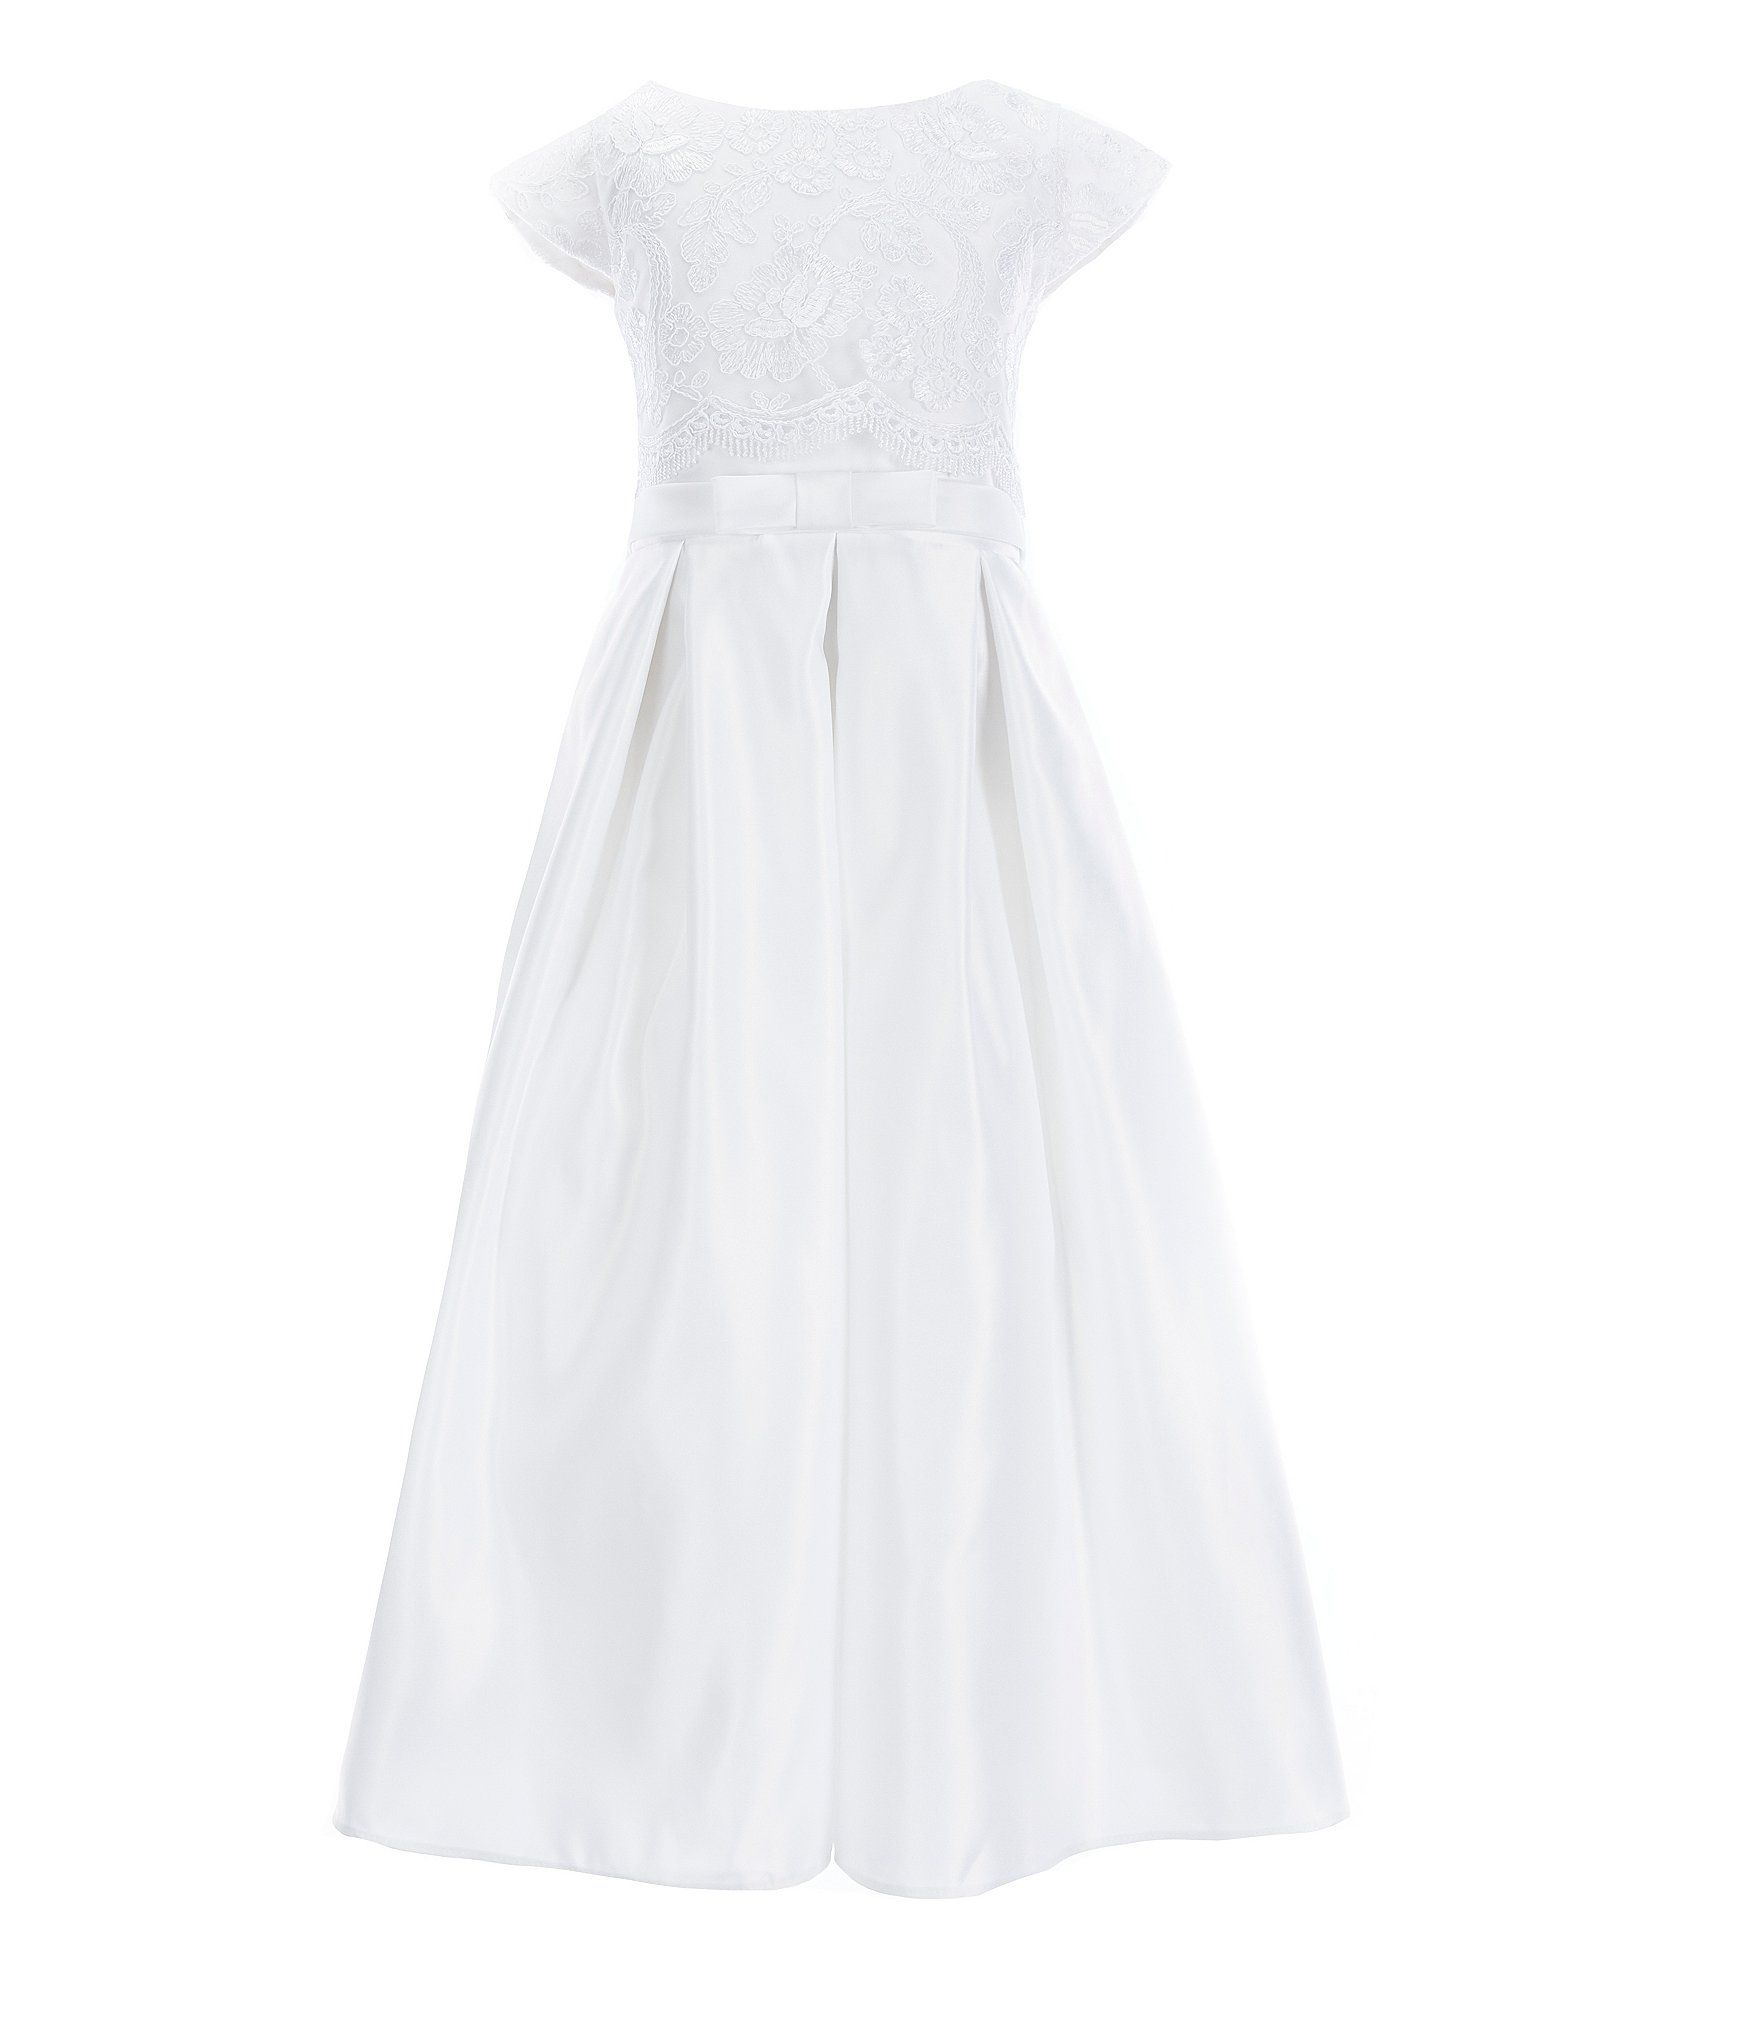 00952eead7a Shop for Sweet Kids Big Girls 7-16 Lace Satin Pocketed A-Line Dress at  Dillards.com. Visit Dillards.com to find clothing